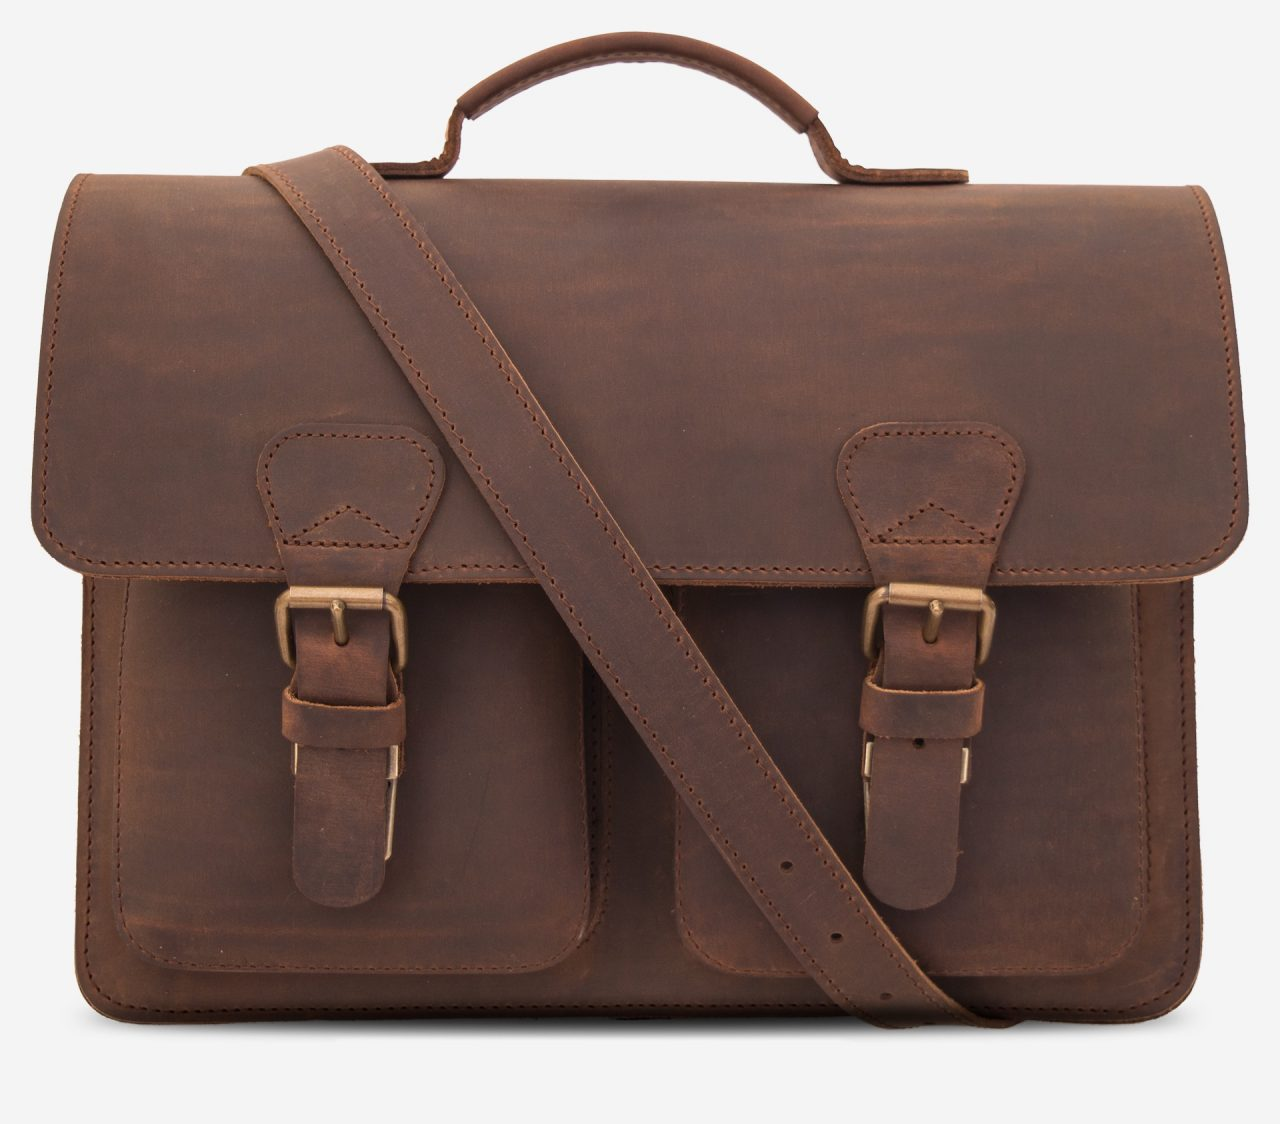 Front view of the brown leather satchel briefcase with a shoulder strap.